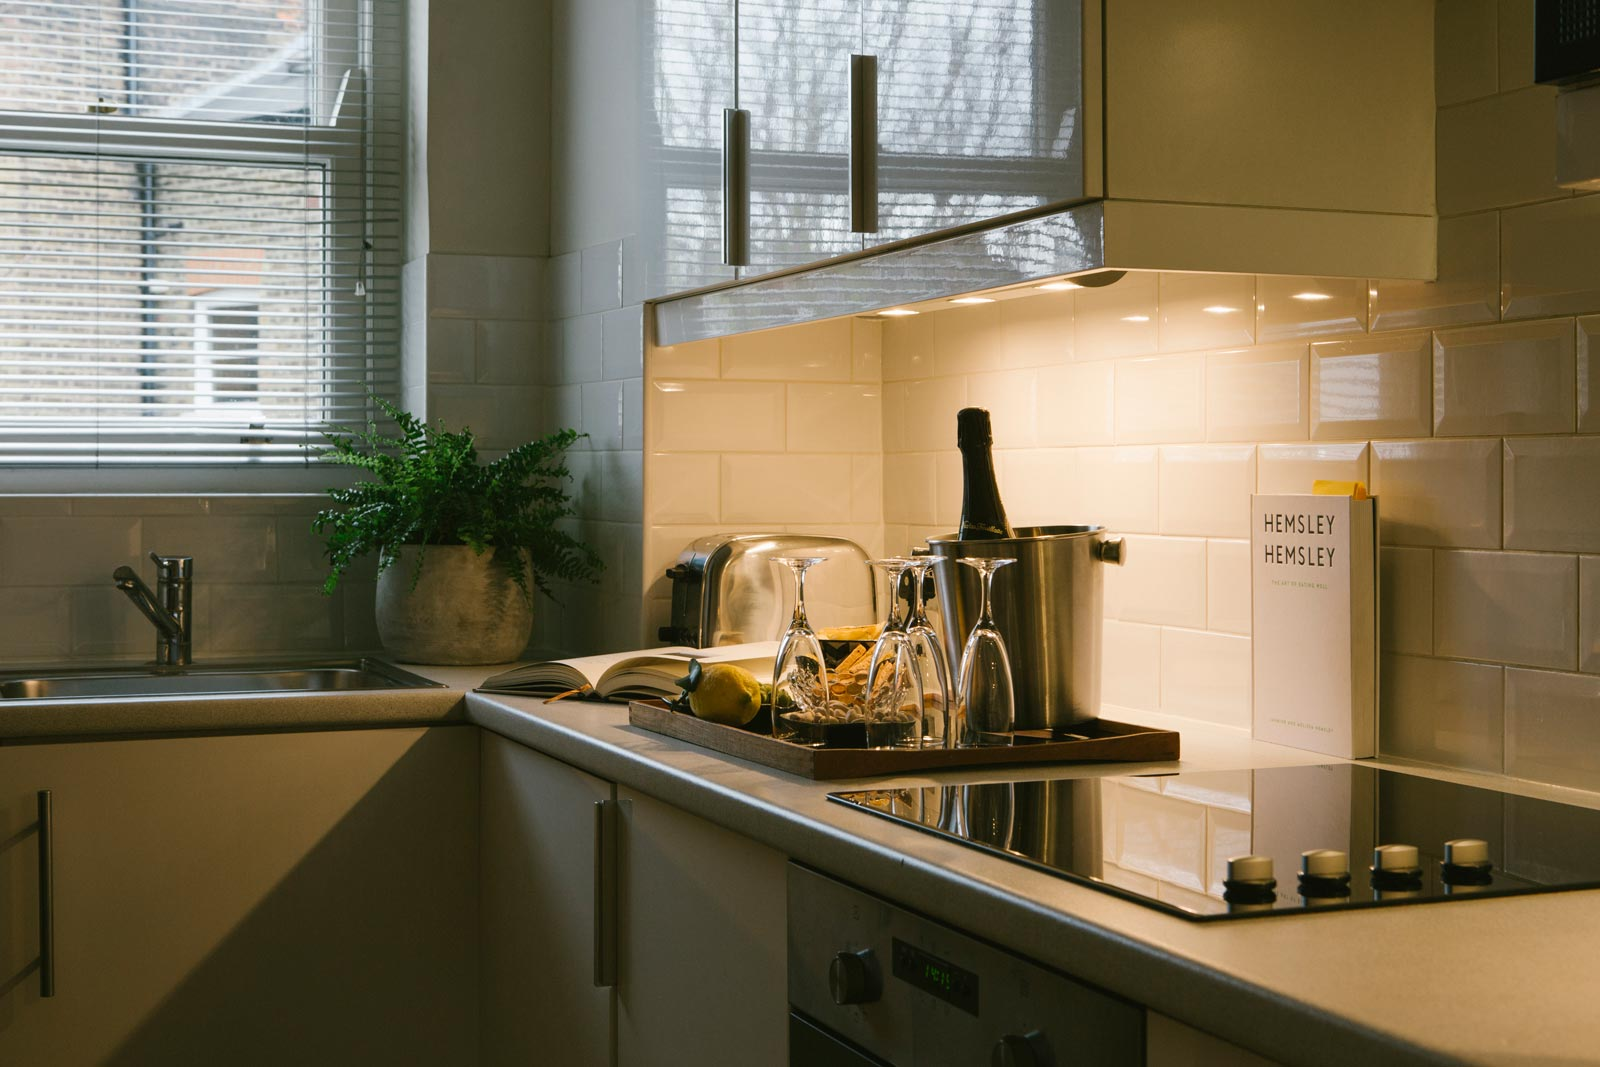 Europa House Apartments - Your Luxury London Home-From-Home 9